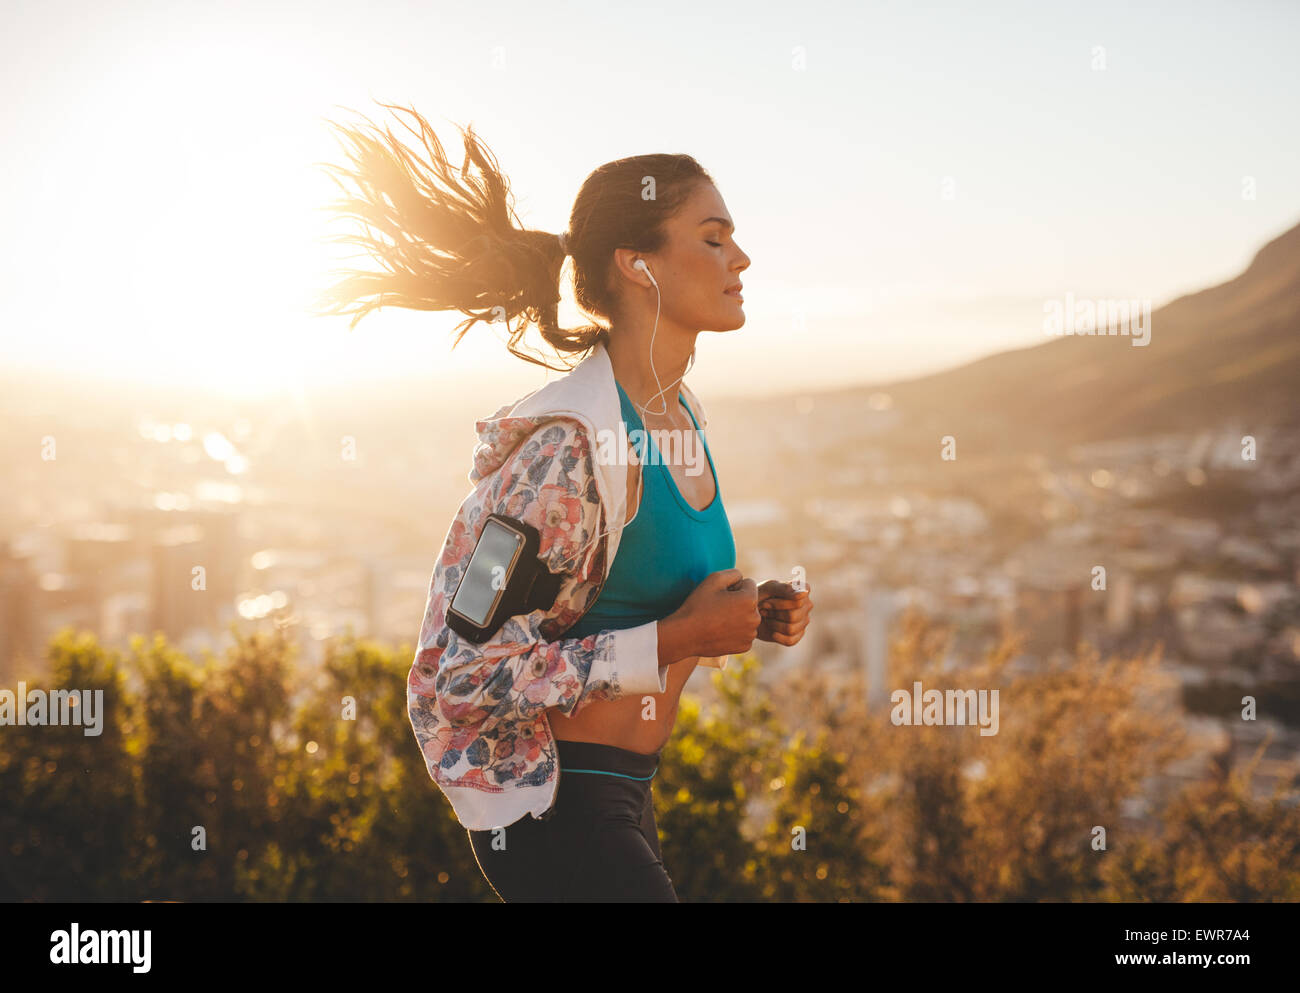 Portrait of beautiful young woman out for a run on a hot sunny day. Caucasian female model jogging outdoors. - Stock Image